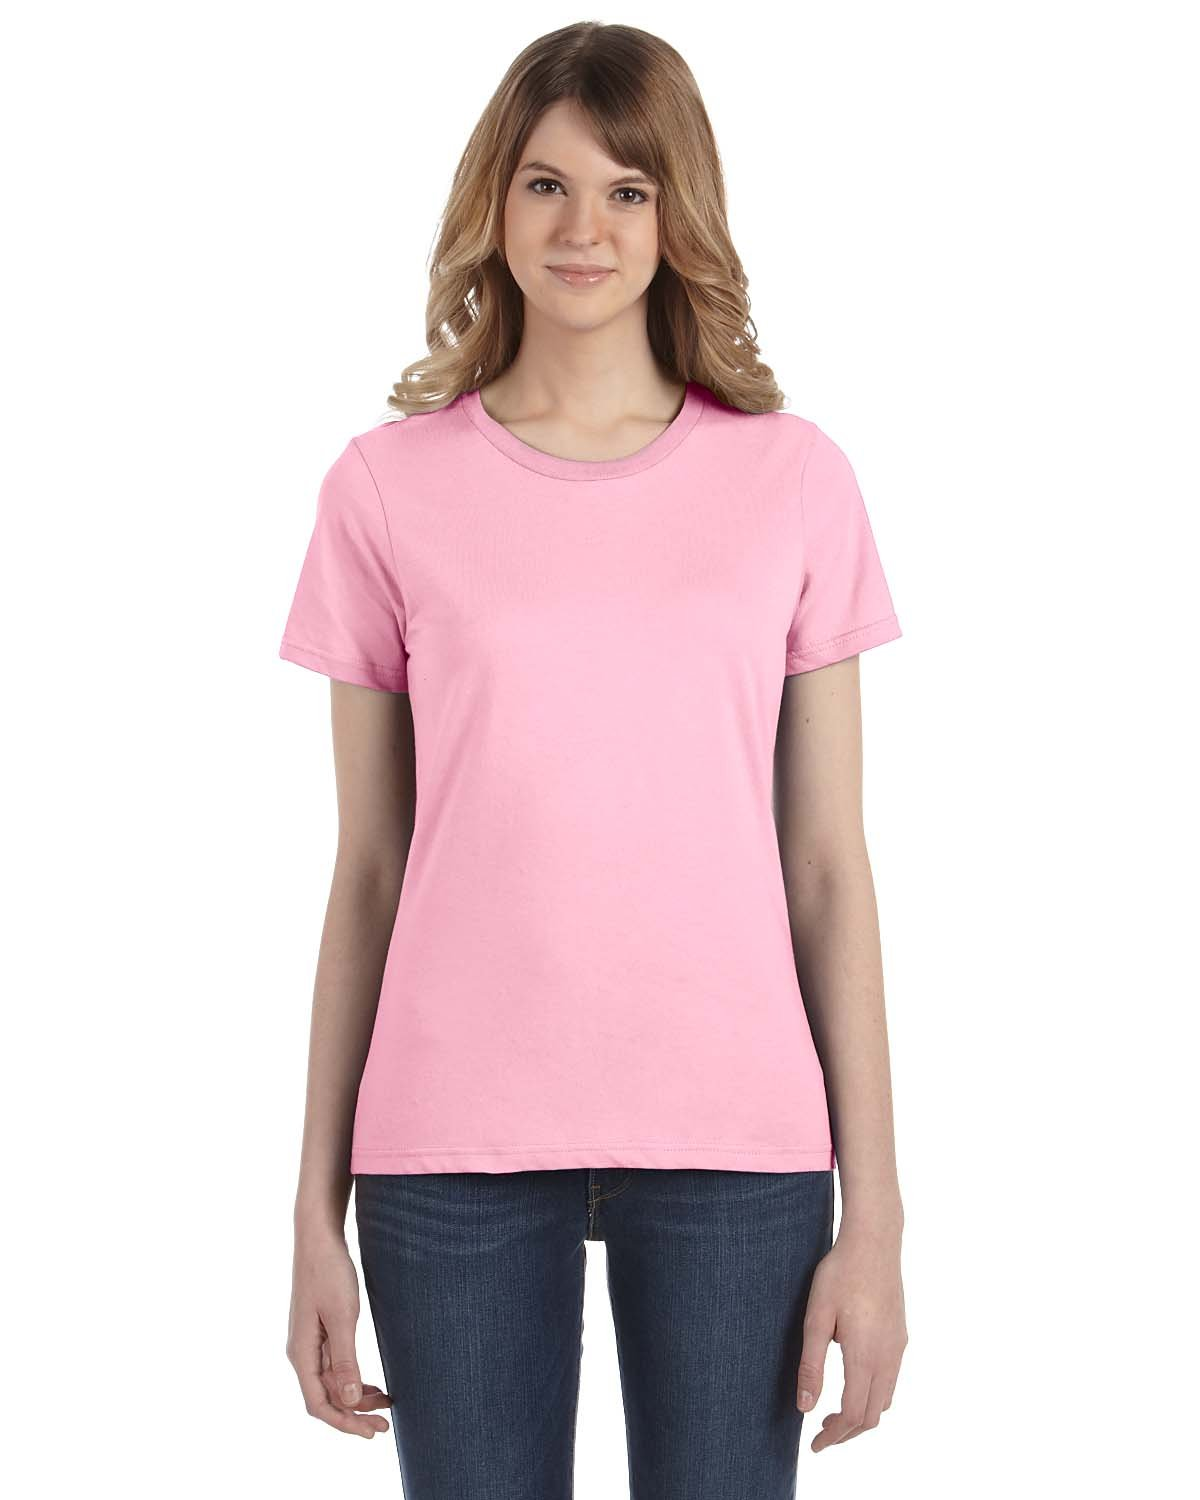 Anvil Womens Ringspun Cotton Fashion Fit T-Shirt-4LVS